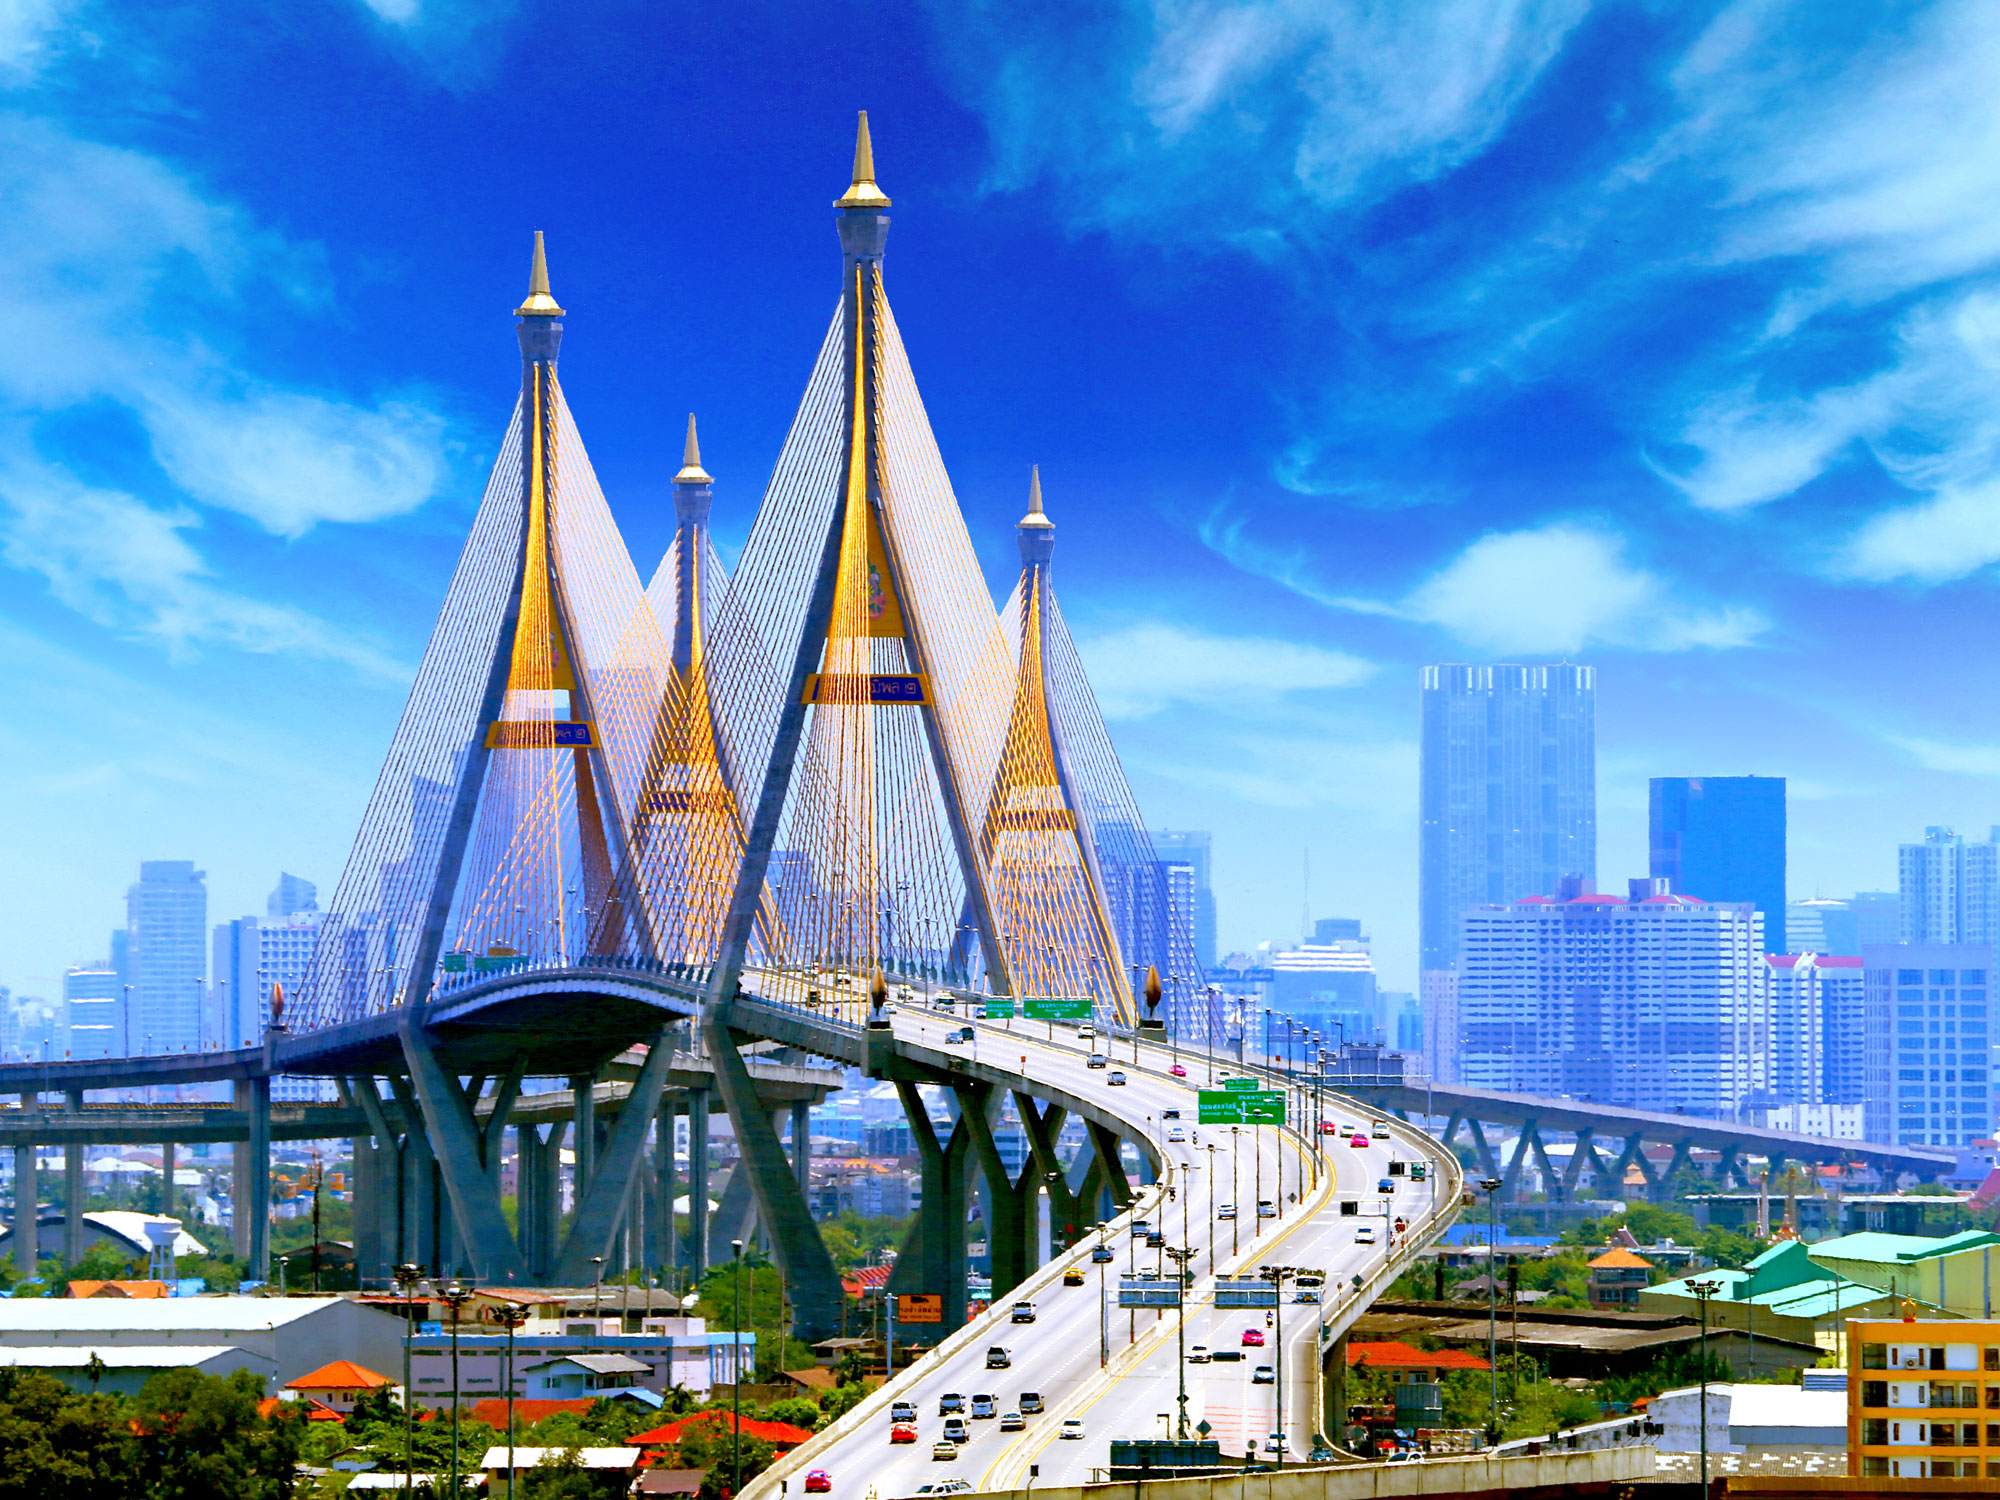 Bhumibol Bridge in Bangkok, Thailand